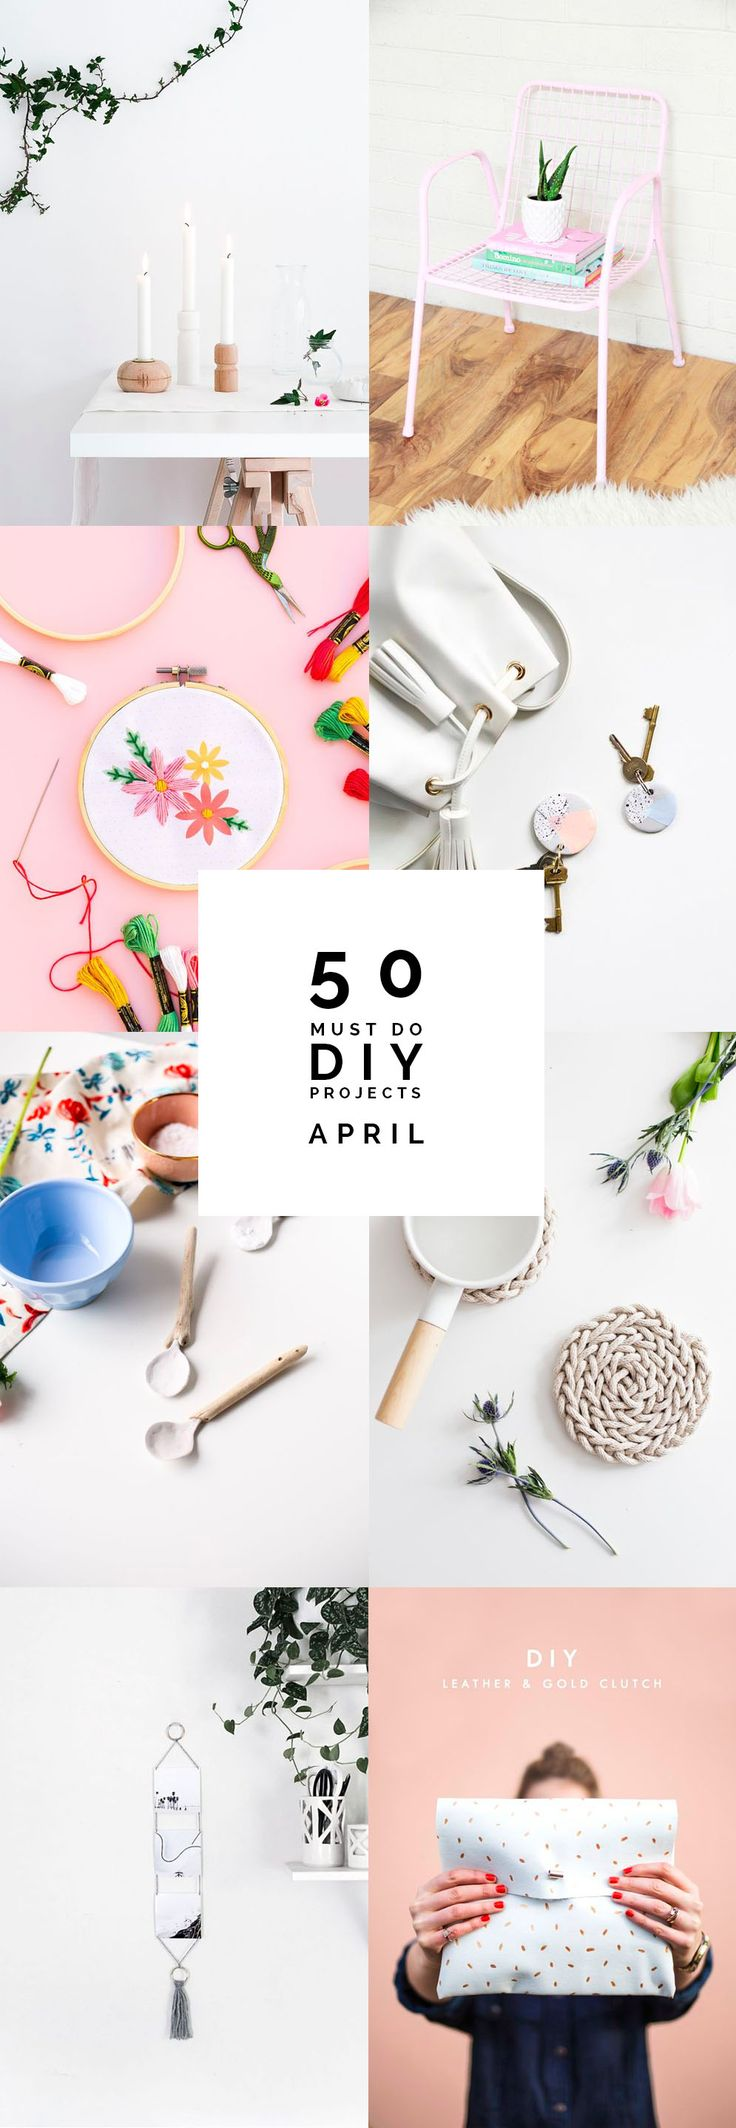 Need some creative inspiration? Here are 50 Must do DIY Projects from April to fuel your DIY needs until the end of May! Pin this now!